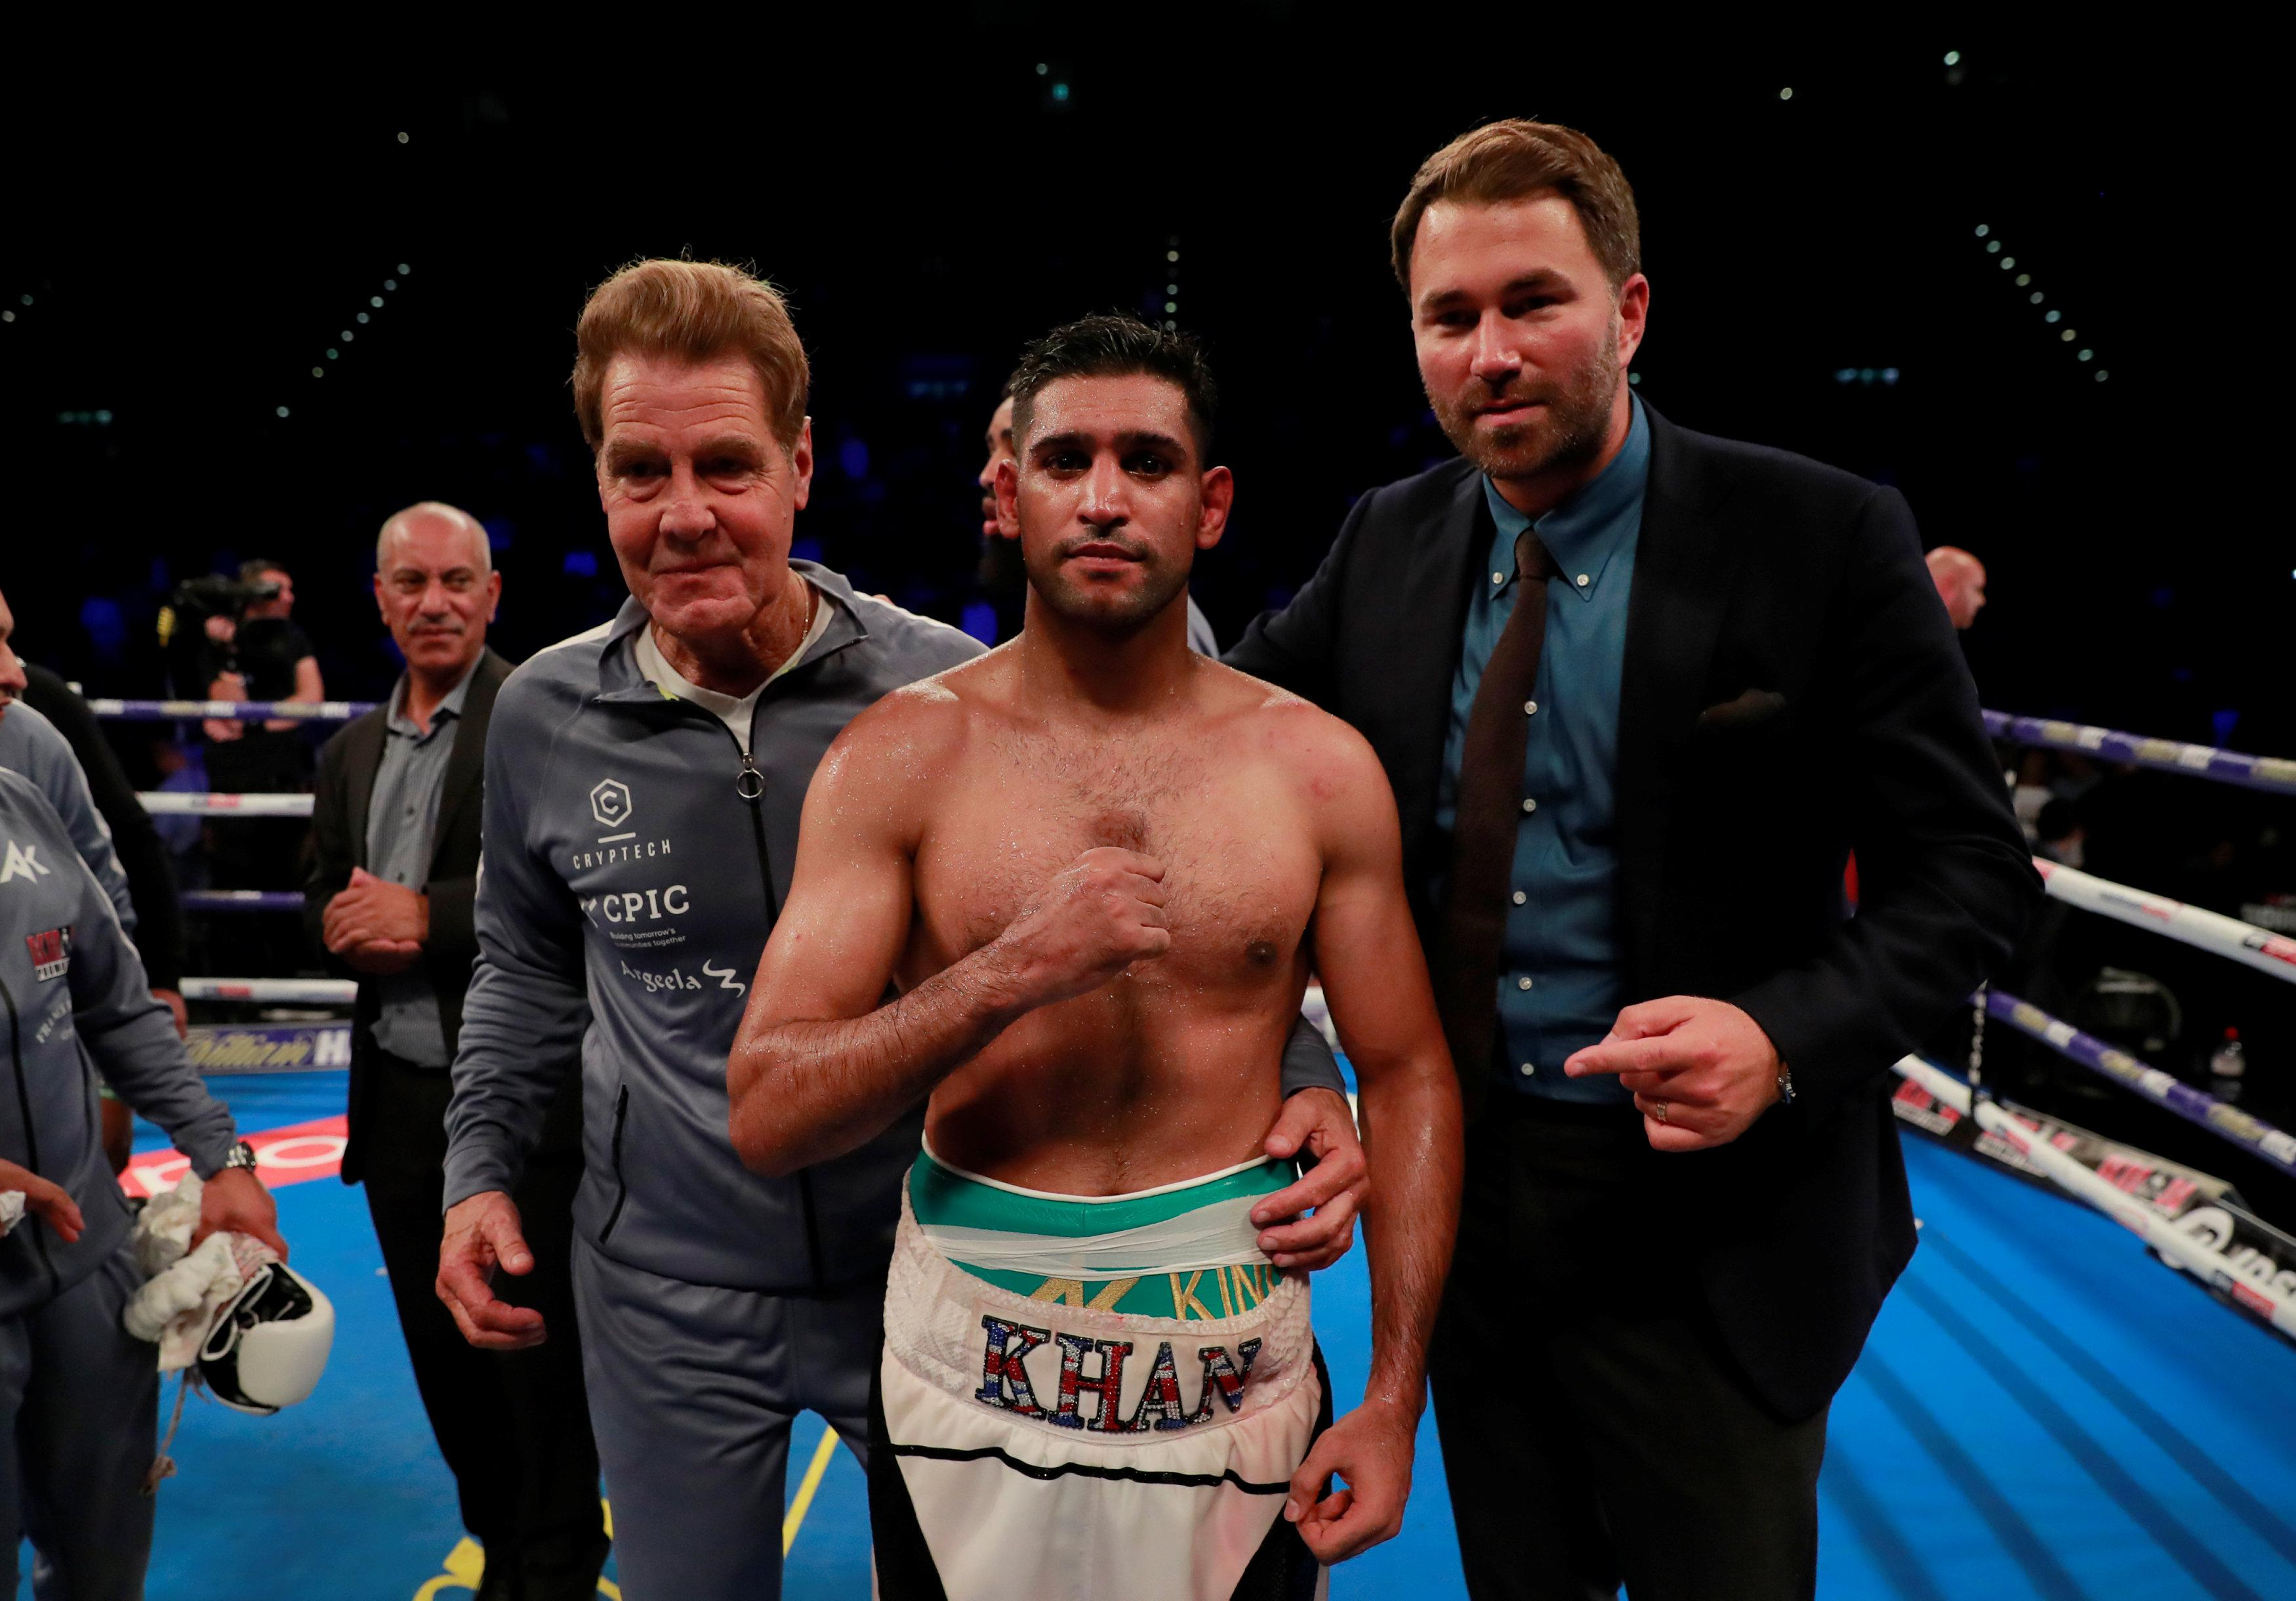 Amir Khan is looking for his next fight after beating Samuel Vargas